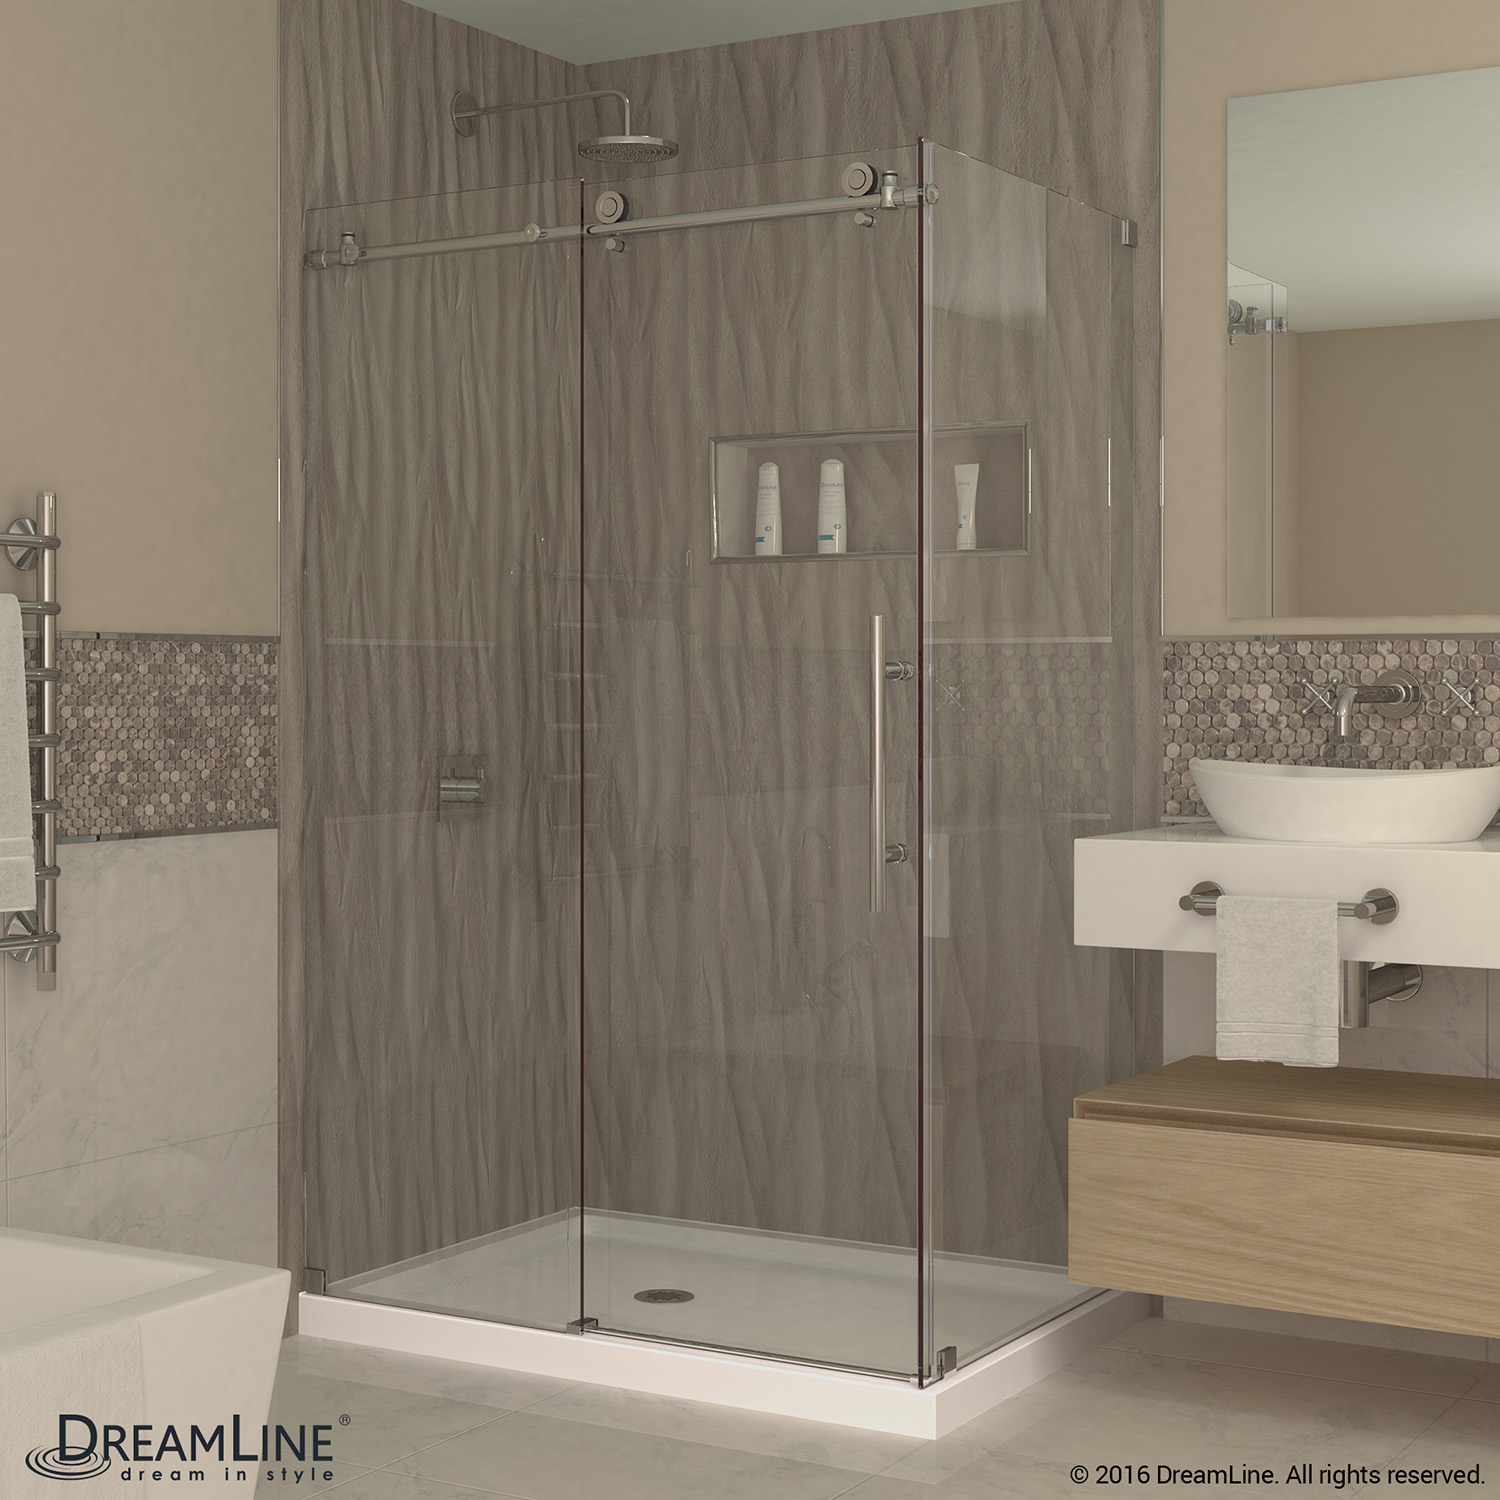 sliding depot enigma lowes z tub dreamline size full shower x door home video air doors vs installation of